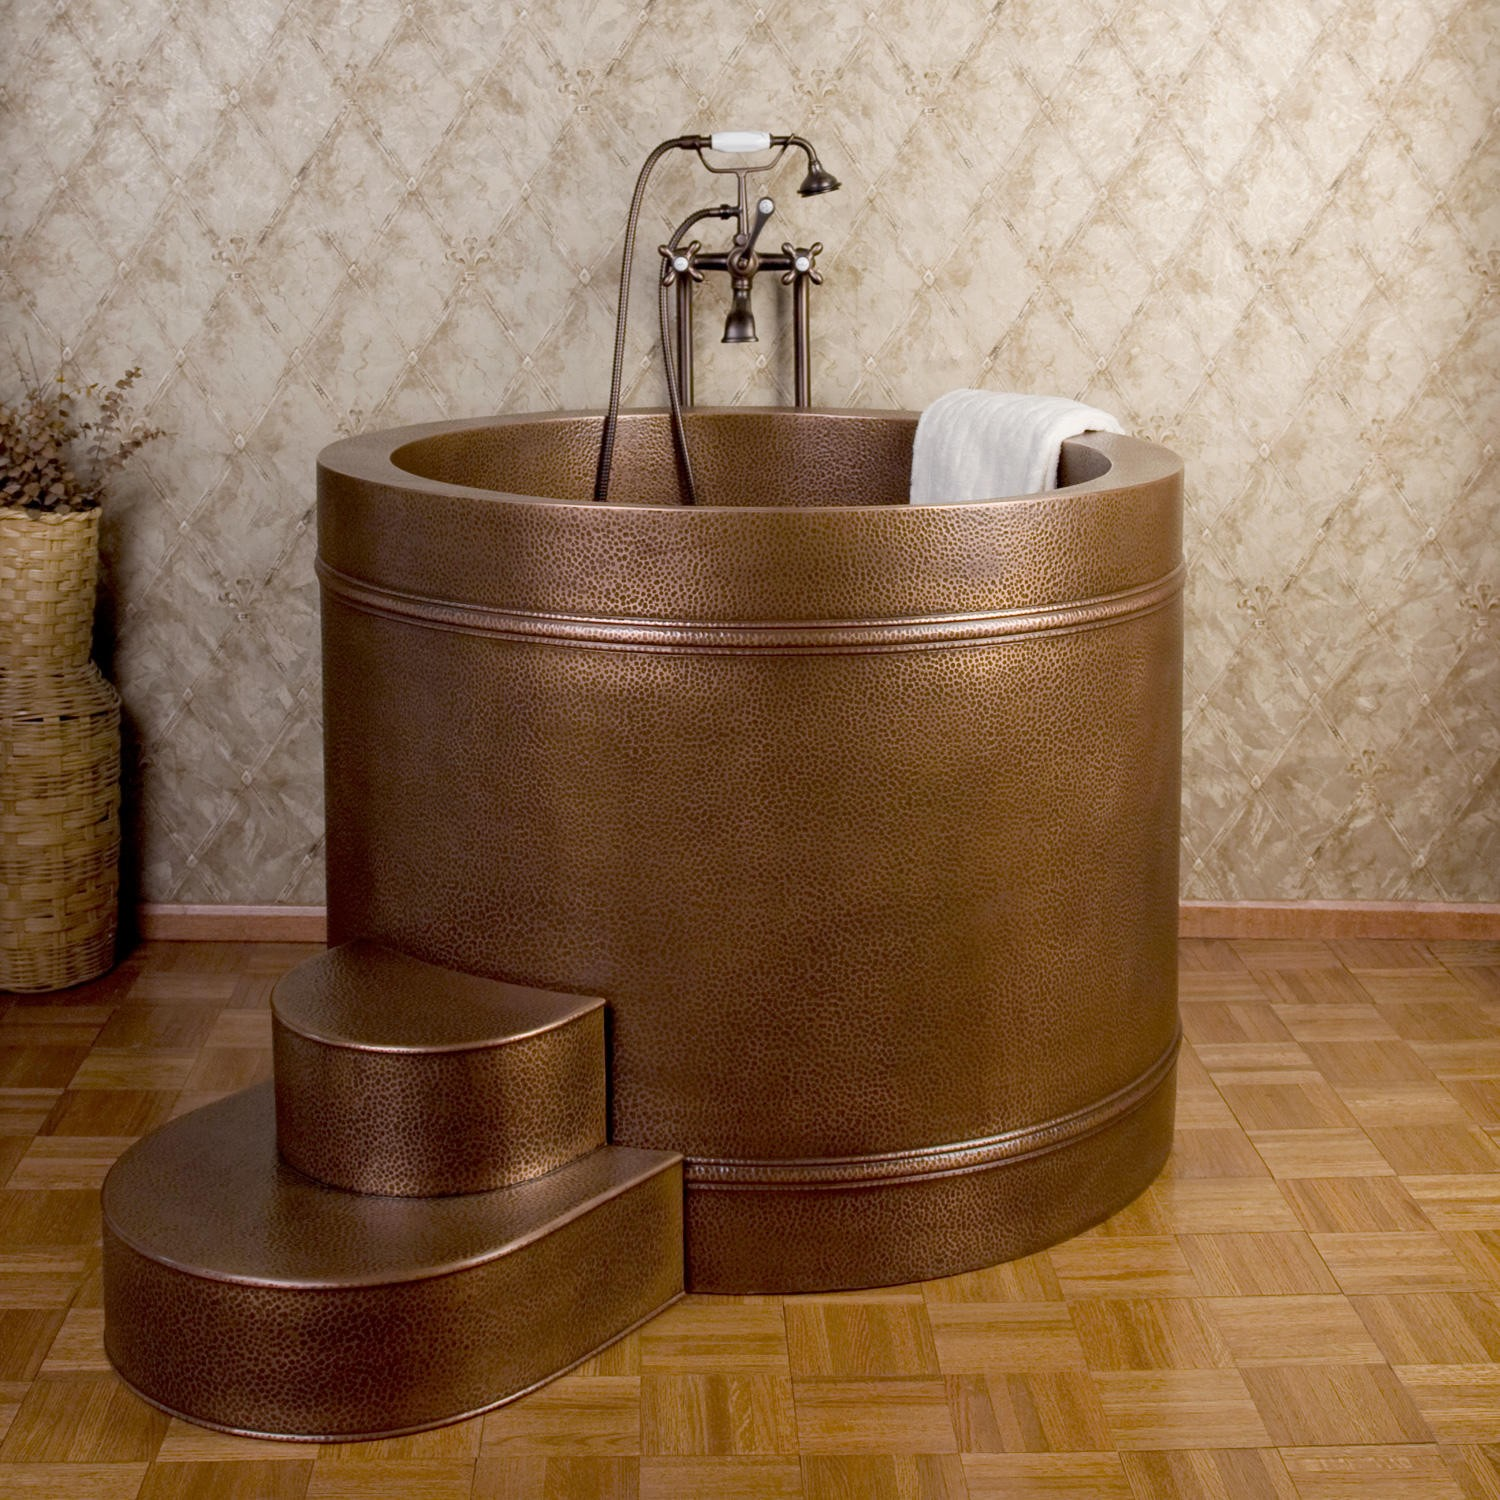 Japanese Soaking Tub With Shower Ofuro Soaking Tubs The